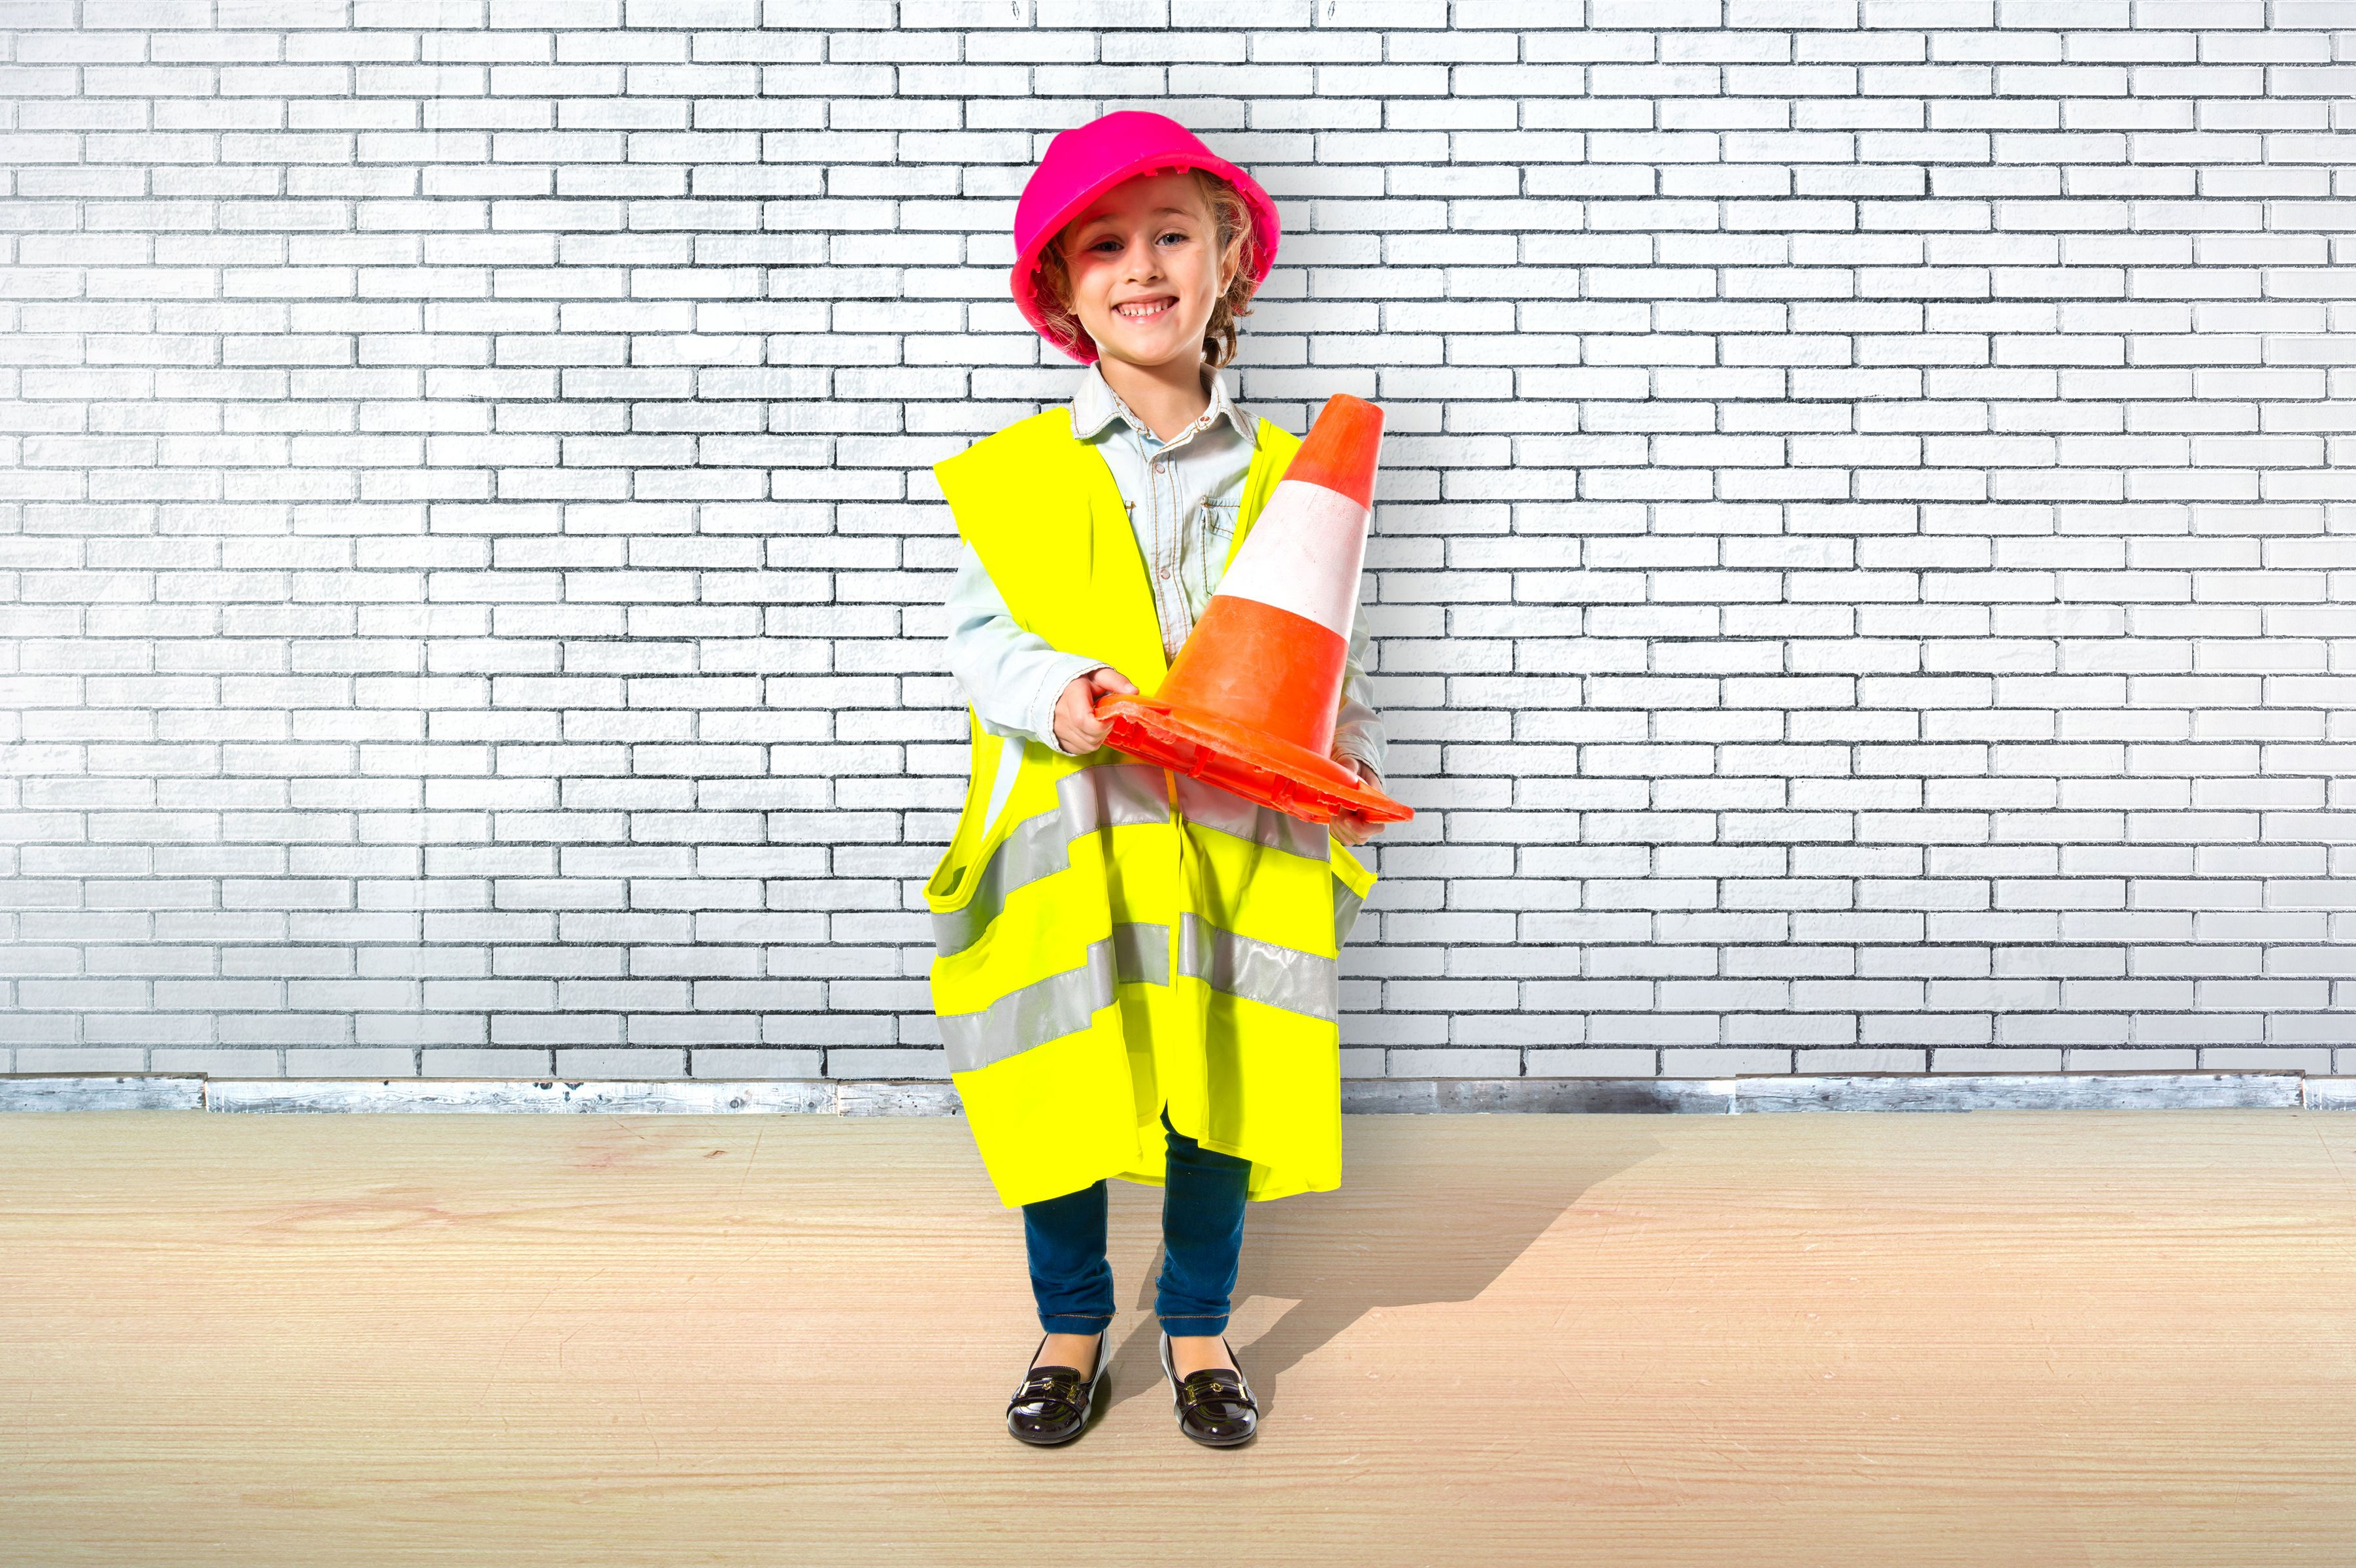 Simple Resources To Promote School Safety